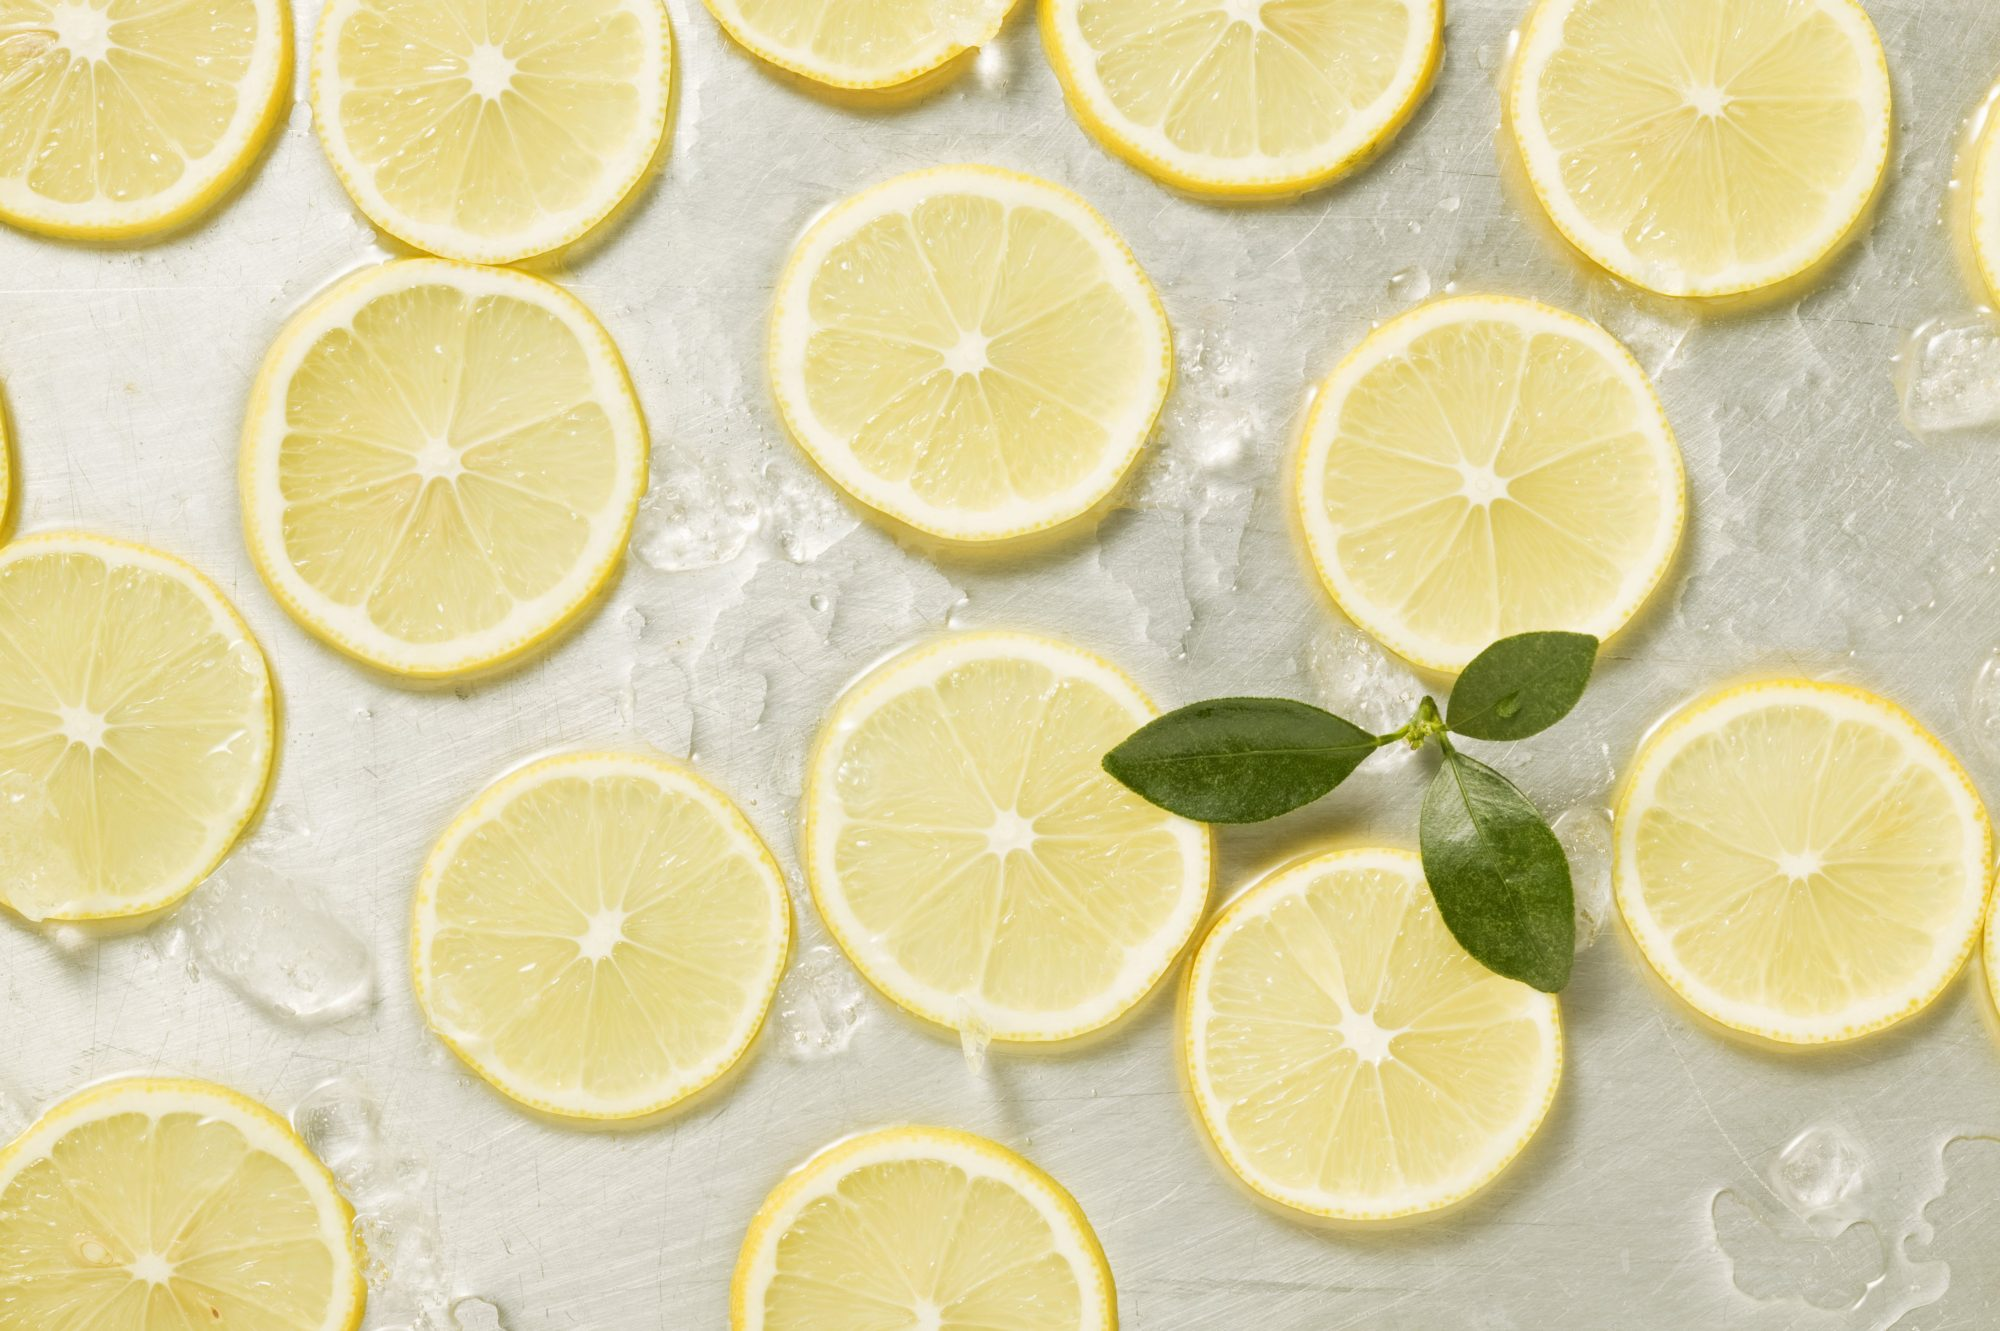 You Asked: Will Drinking Lemon Water Help Me Lose Weight?